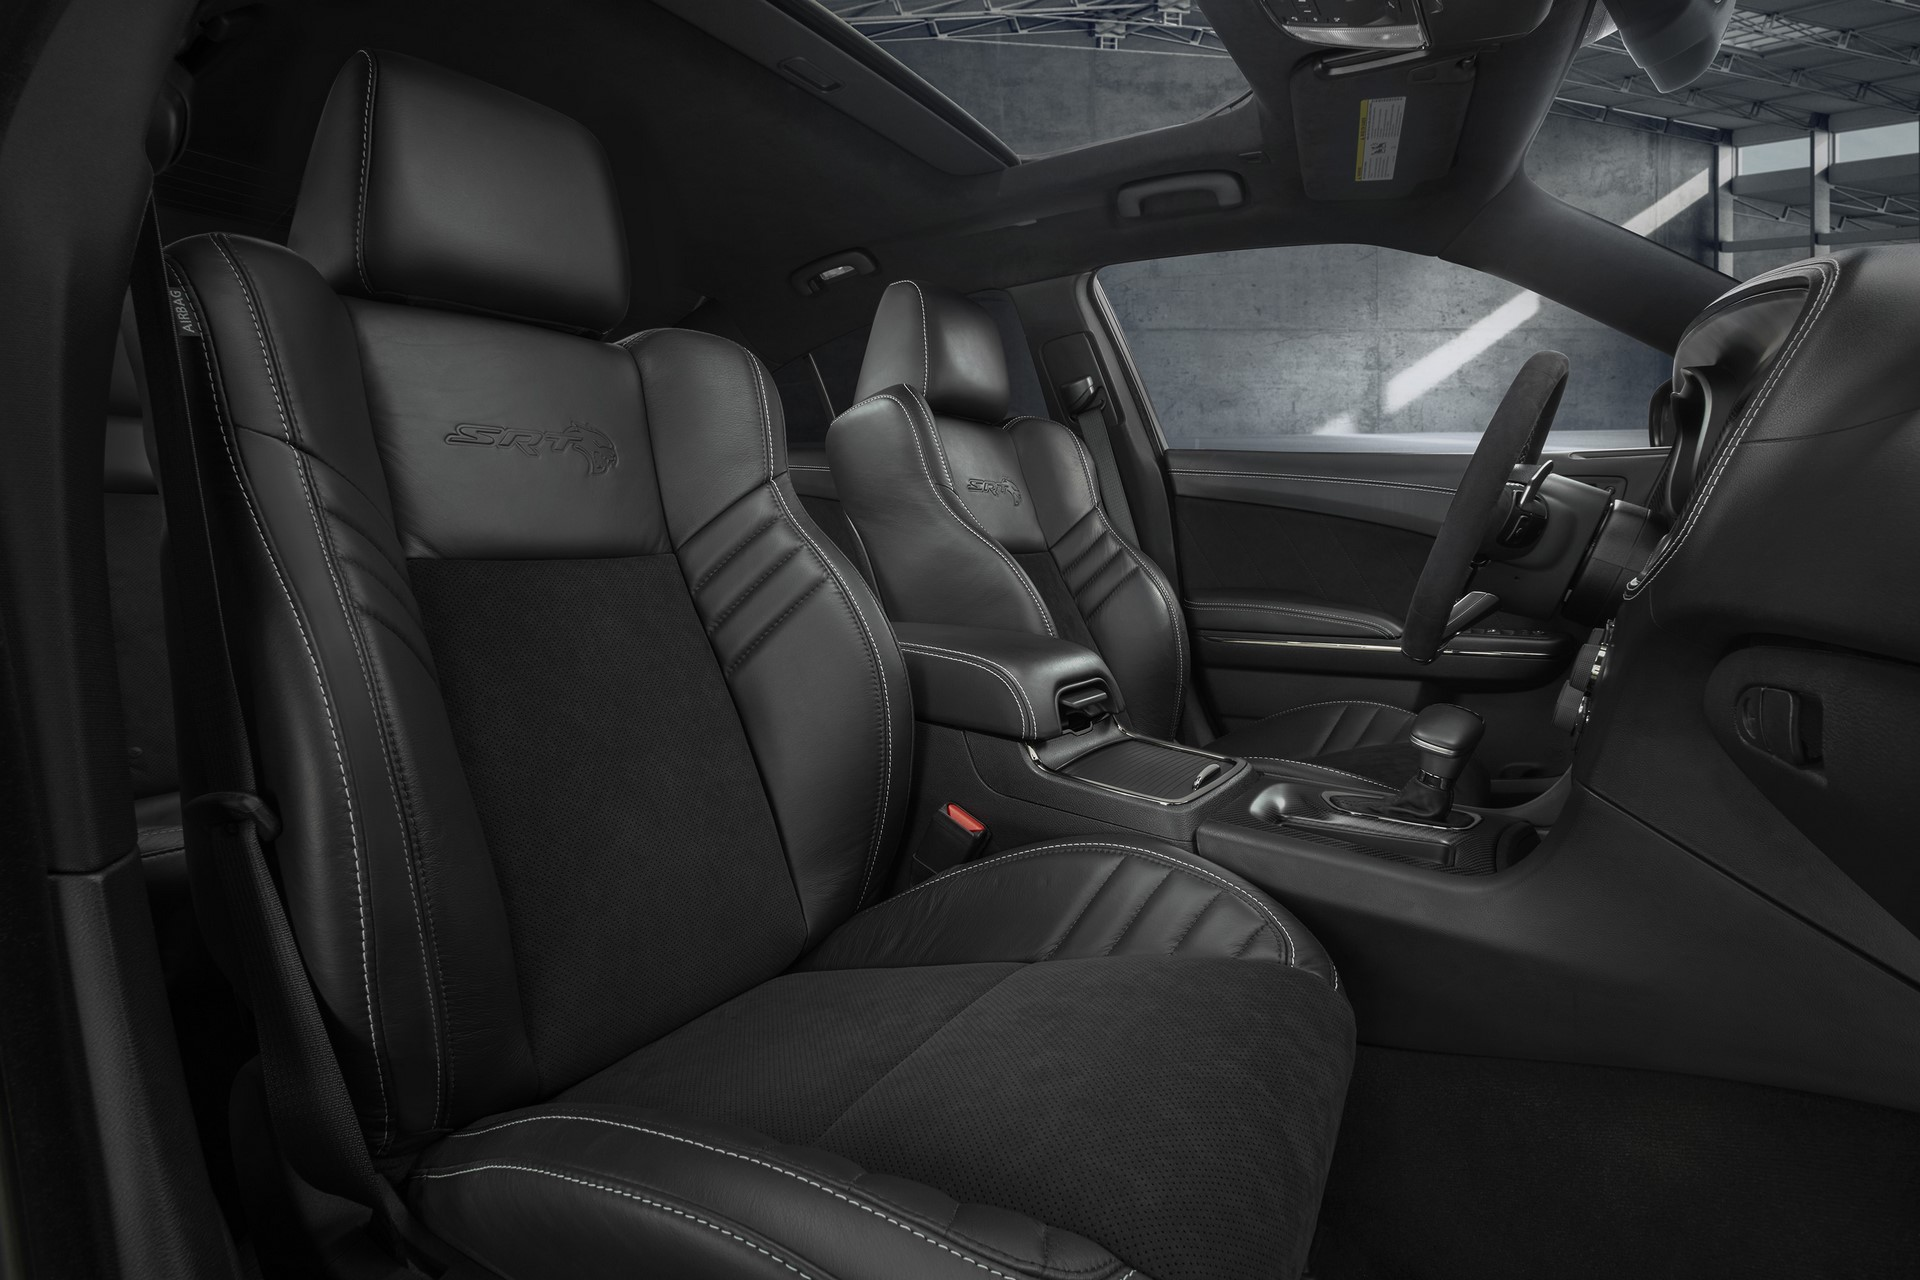 The race-inspired interior of the Dodge Charger SRT Hellcat Widebody features standard heated and ventilated Laguna leather front seats with embossed Hellcat logo - available interior color combinations include Black, Black/Sepia or Black/Demonic Red